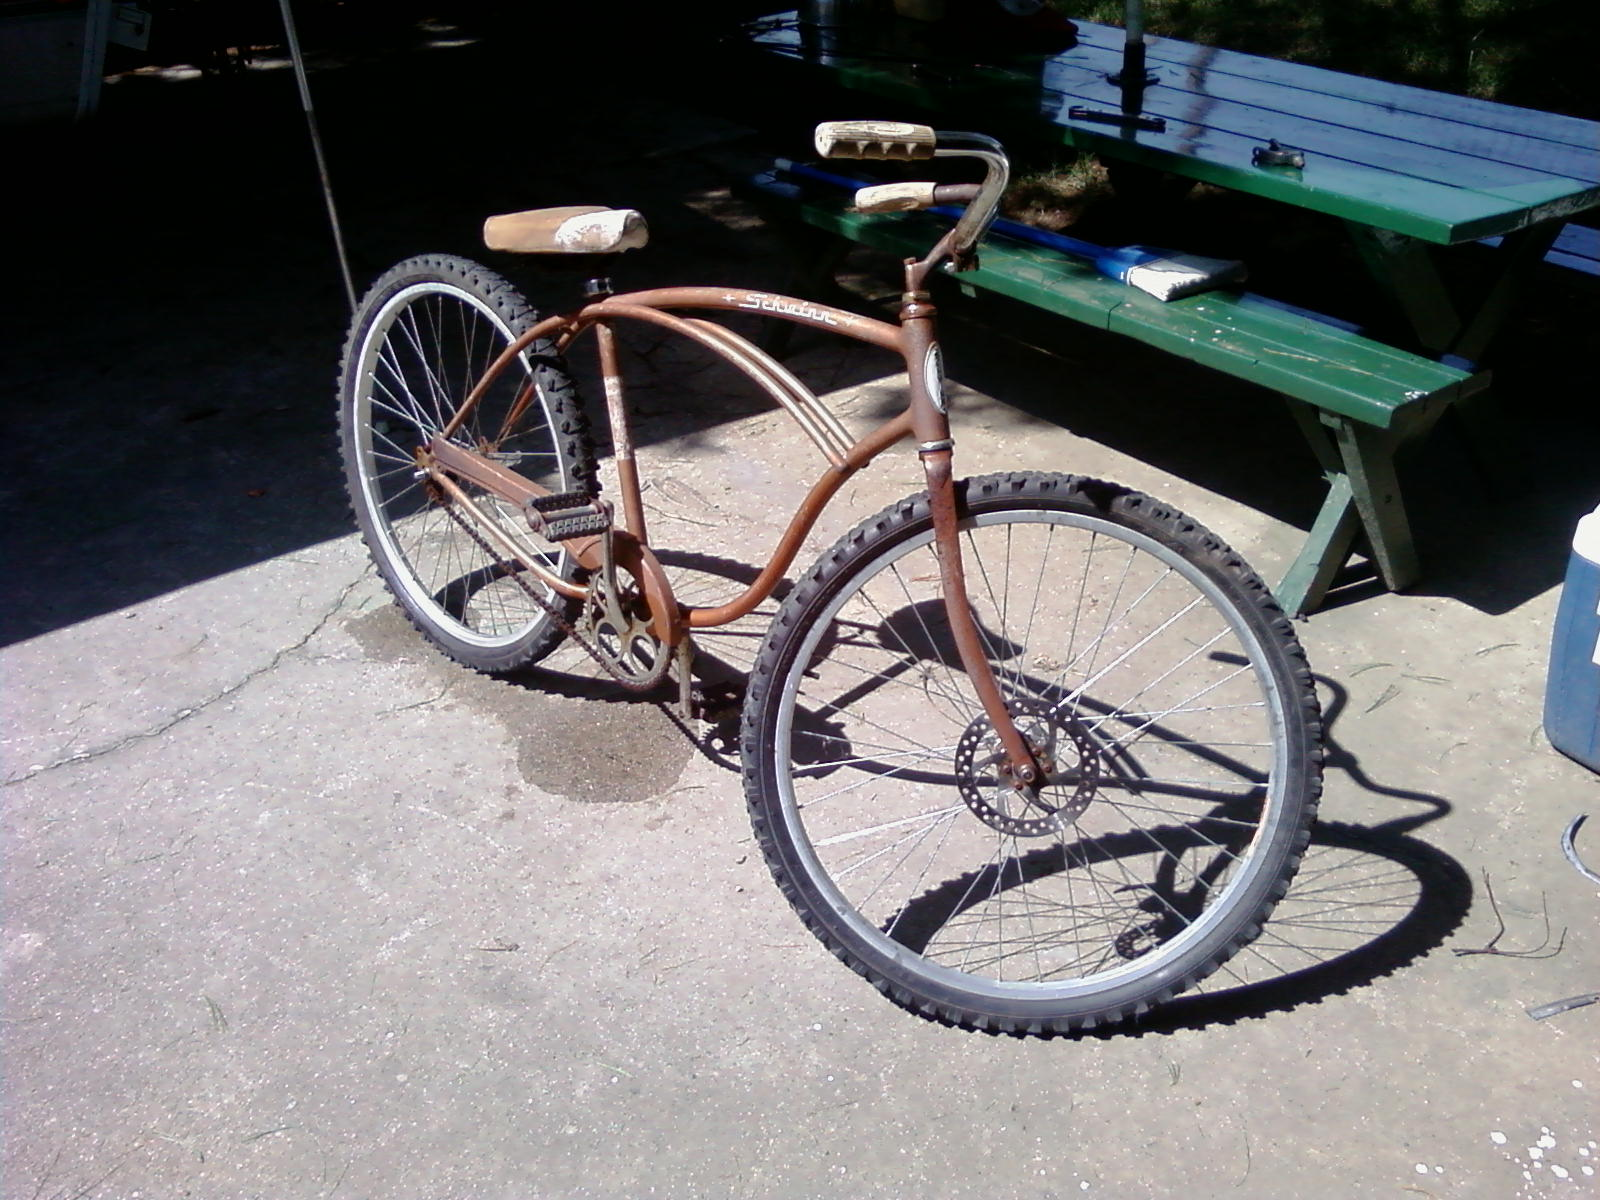 http://uploads.bmxmuseum.com/user-images/3716/0914091245a5801ac2292.jpg